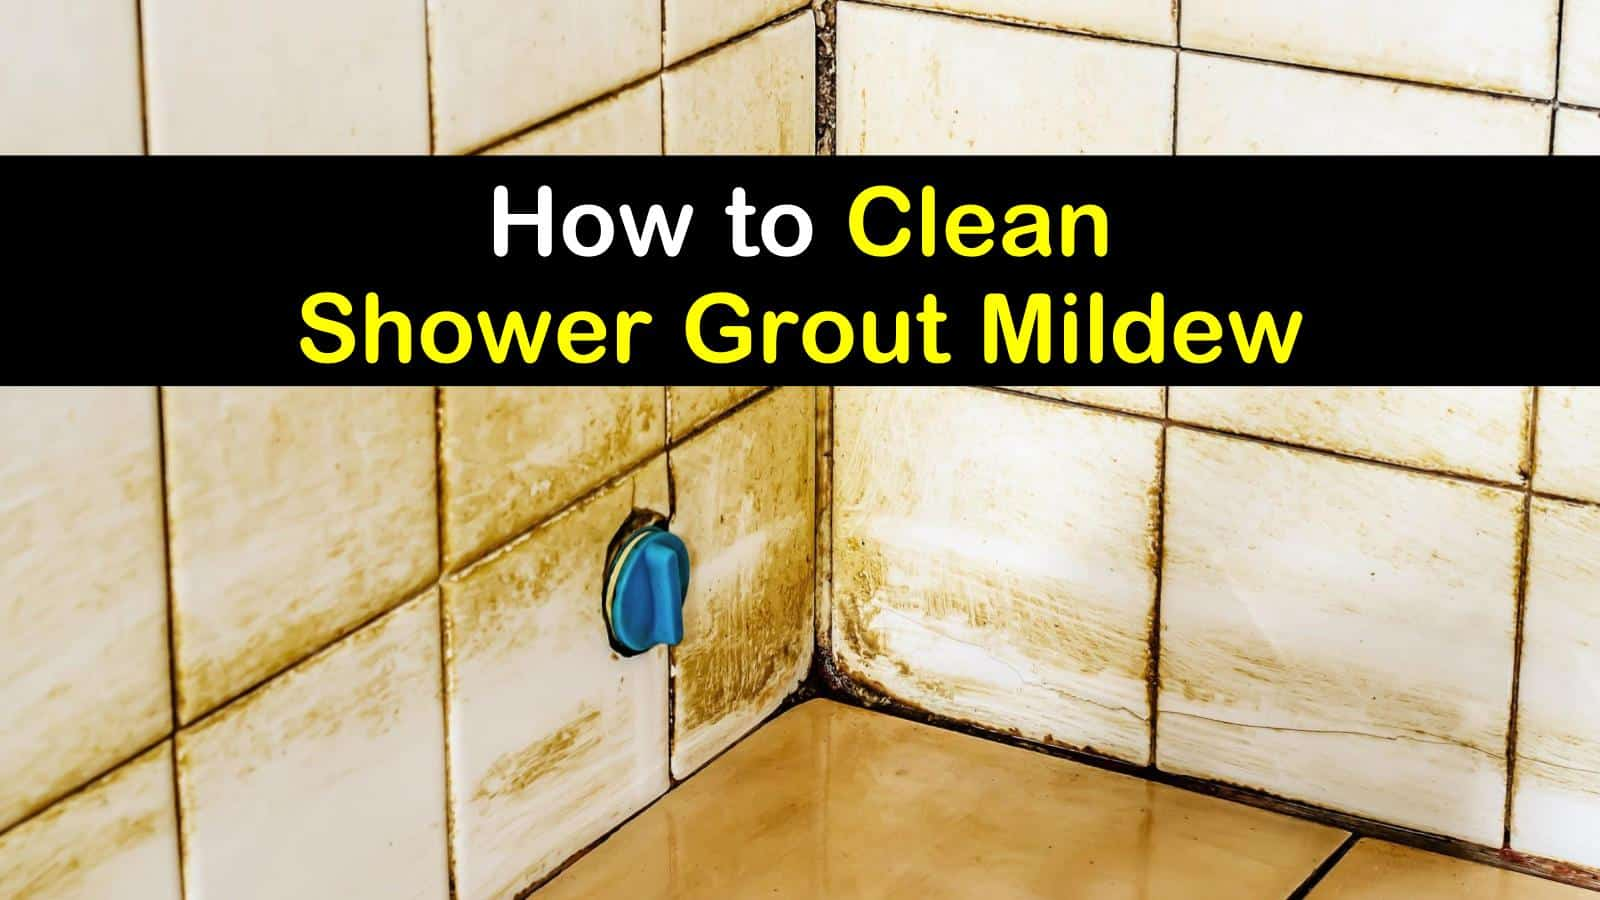 how to clean shower grout mildew titleimg1